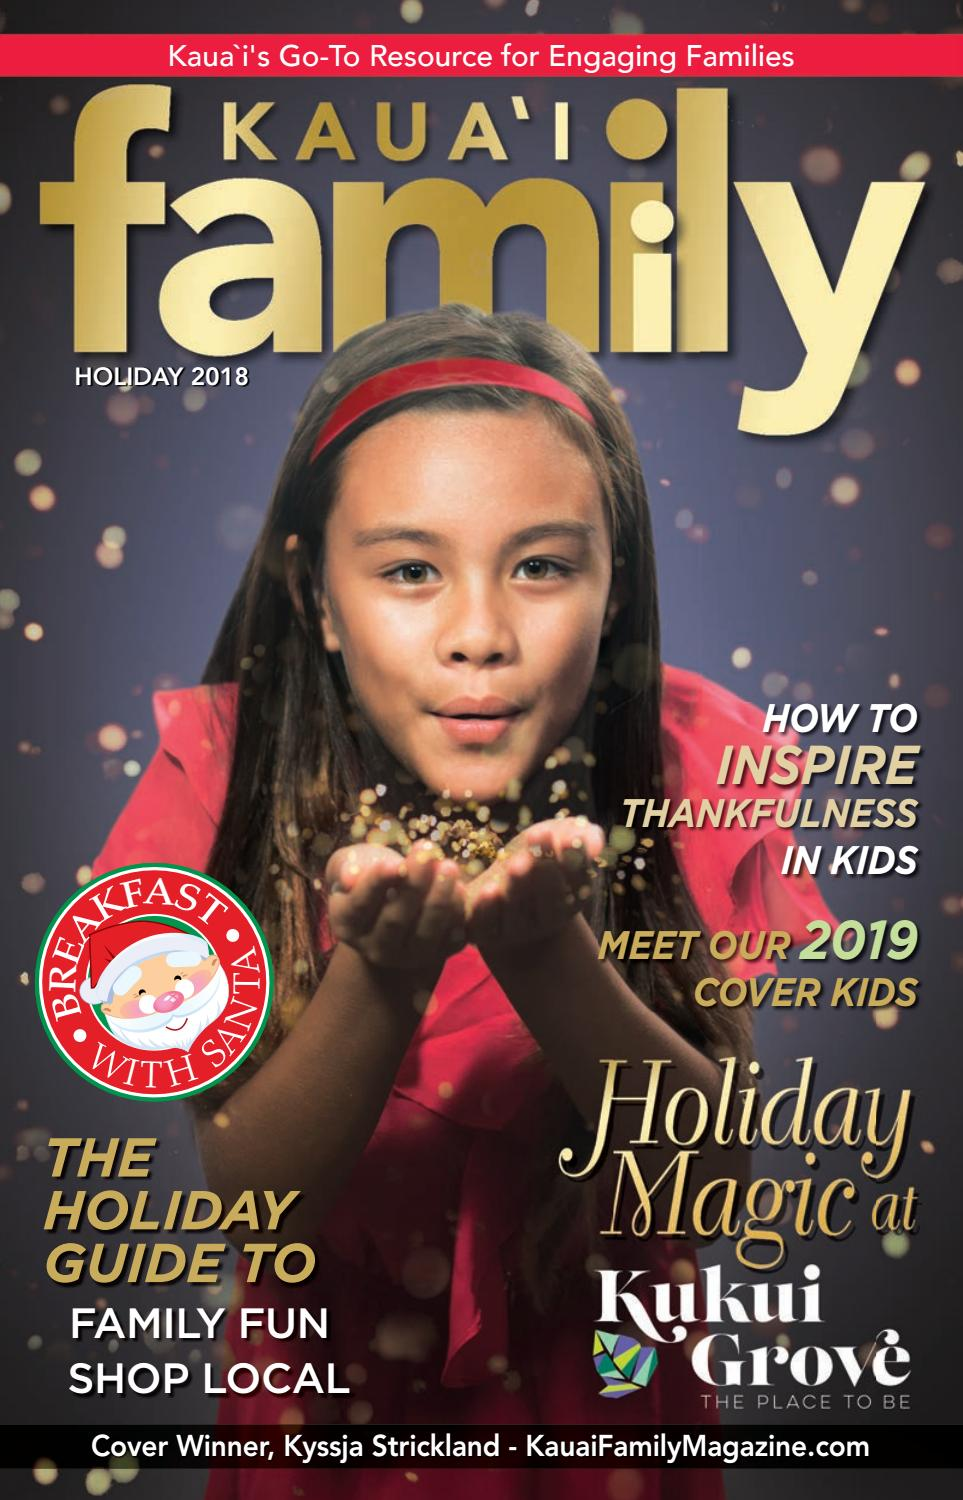 Kauai Family Magazine Holiday 2018 by Kauai Family Magazine